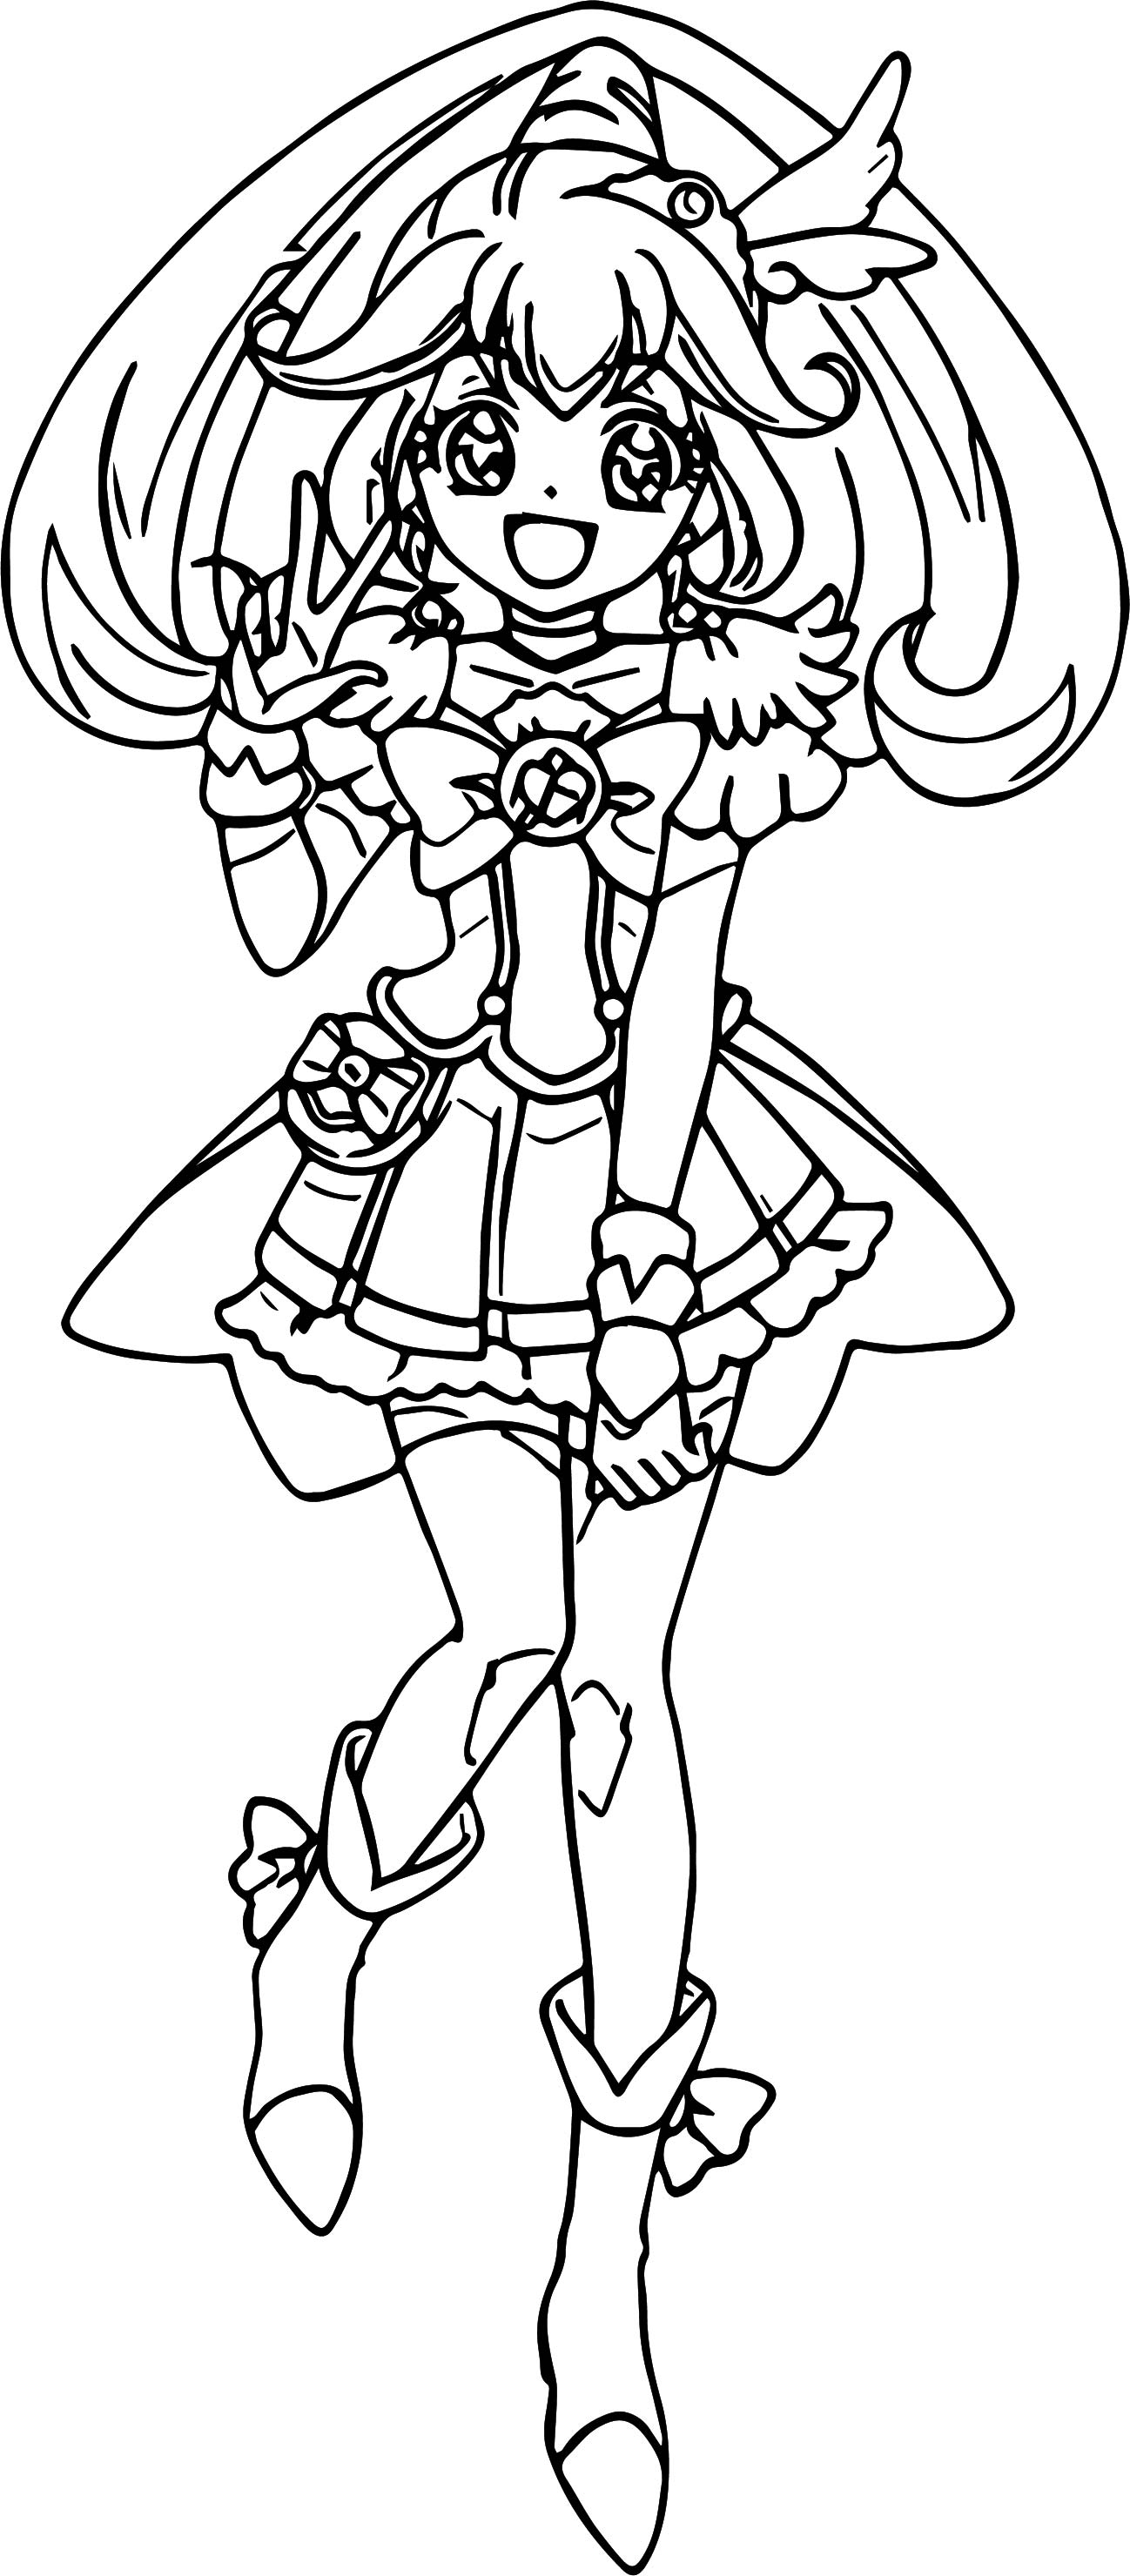 Glitter Coloring Pages At Getcolorings